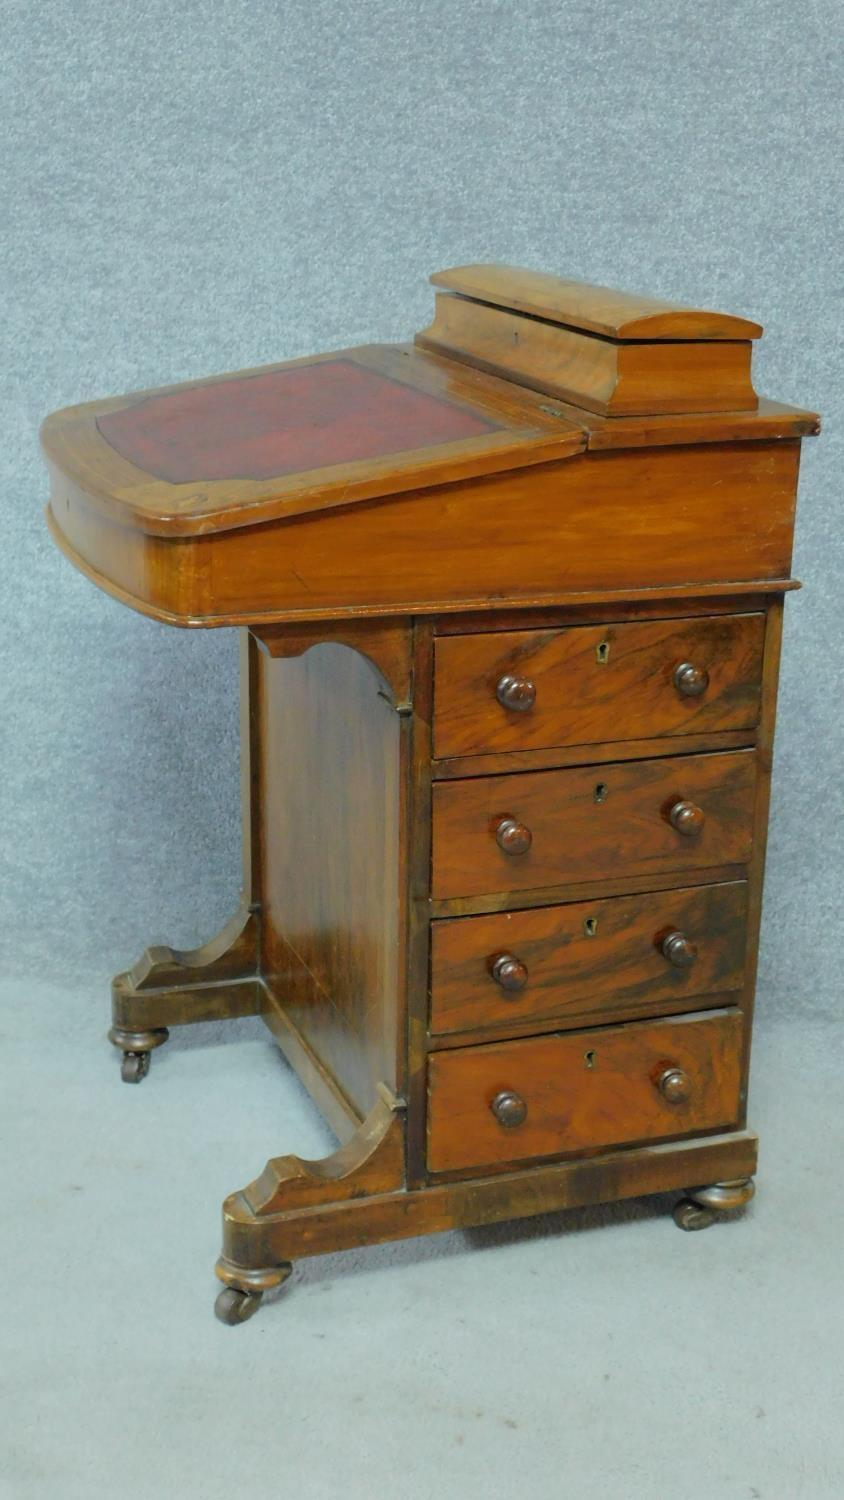 A Victorian burr walnut and satinwood Arabesque inlaid Davenport fitted with four drawers opposing - Image 2 of 8